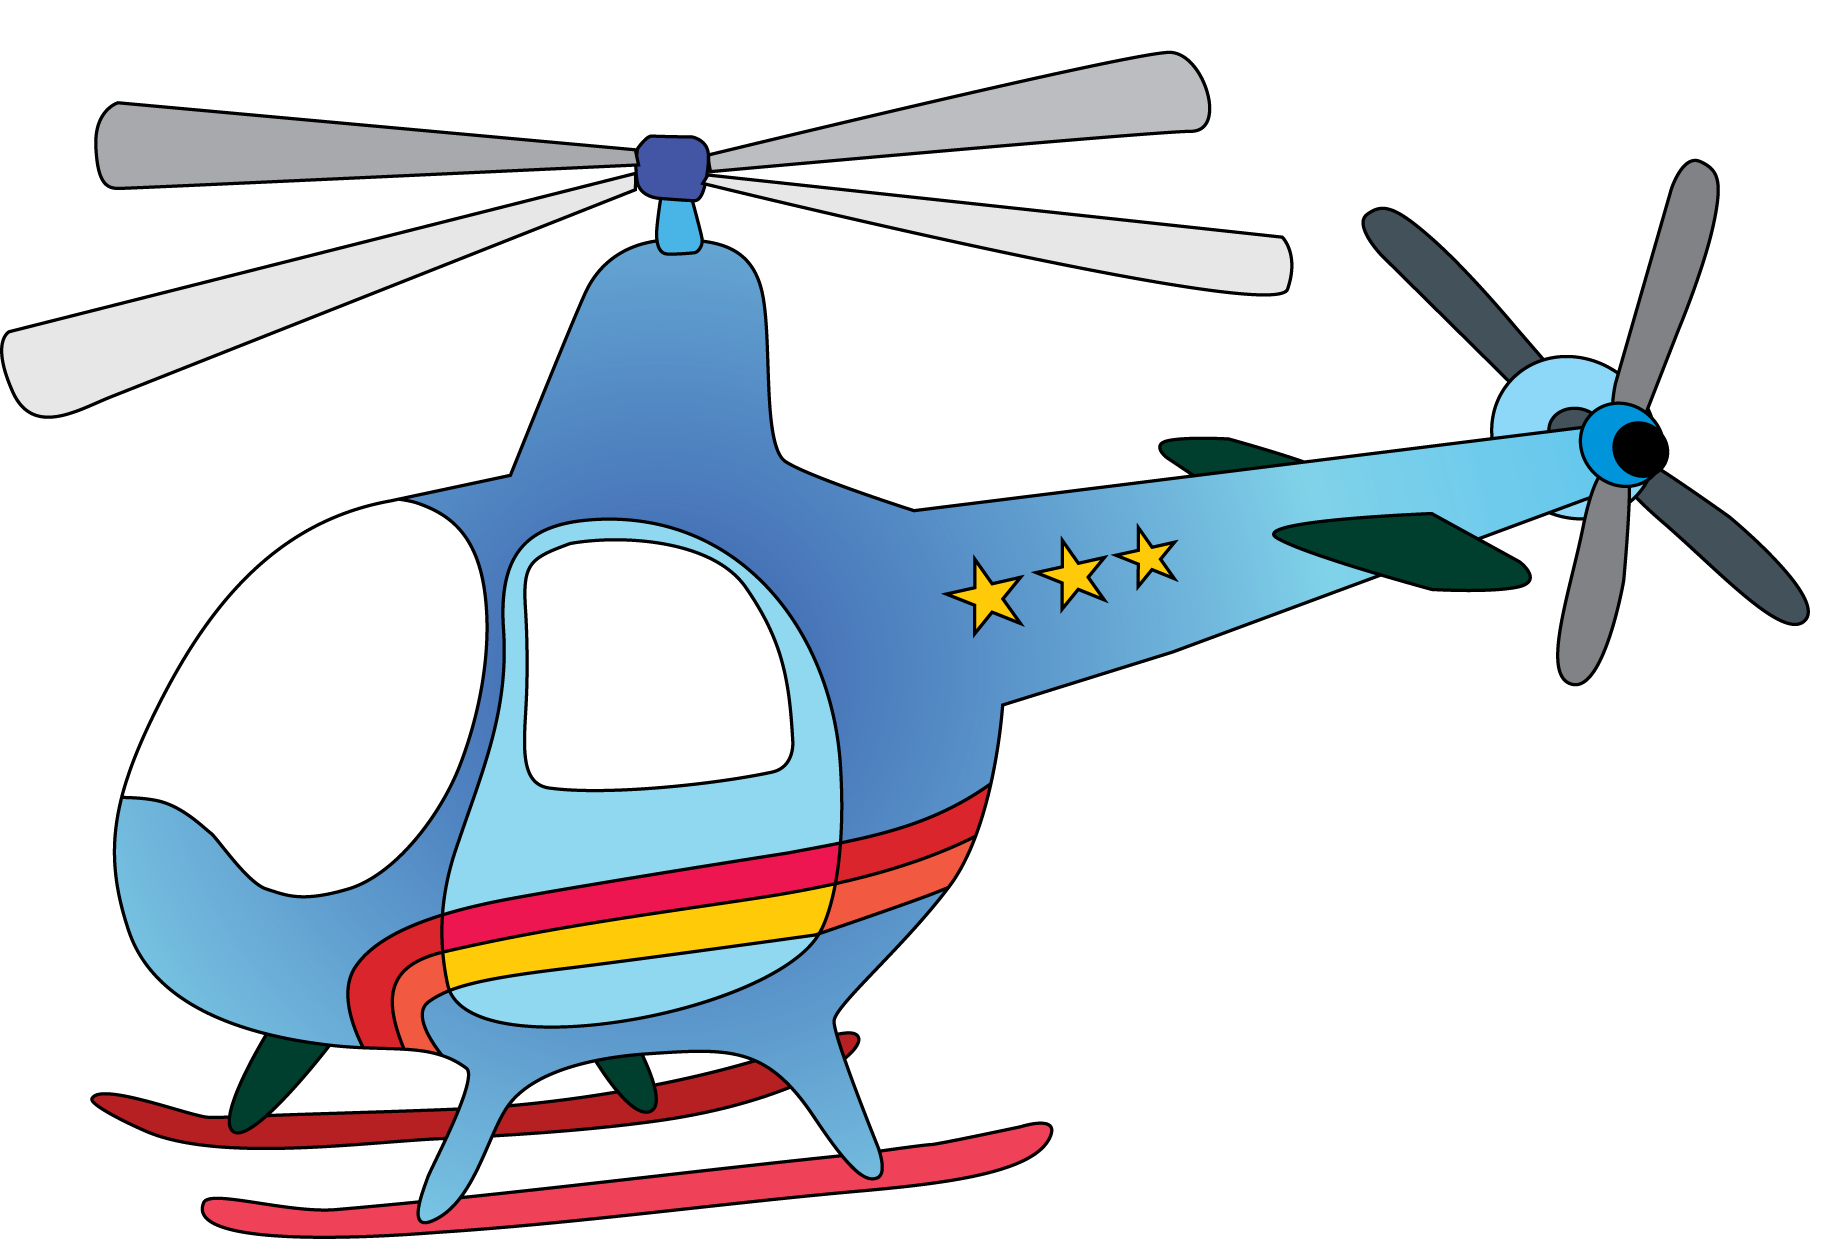 clip art toys clipart best clip art helicopter ride clip art helicopter images